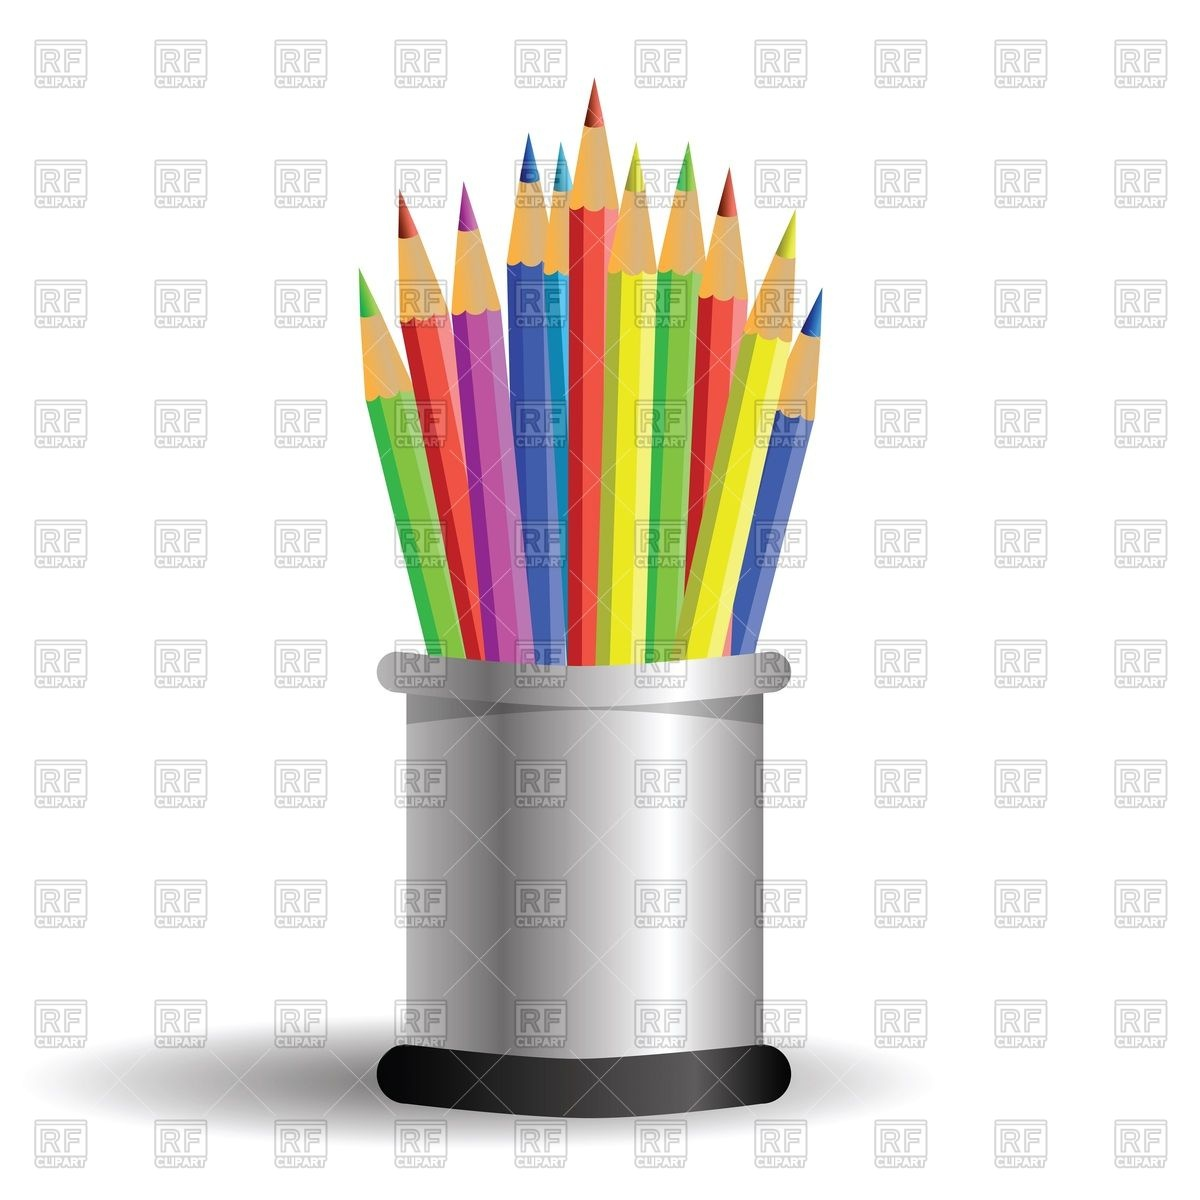 1200x1200 Colored Pencils In Cylindrical Pencil Box Vector Image Vector